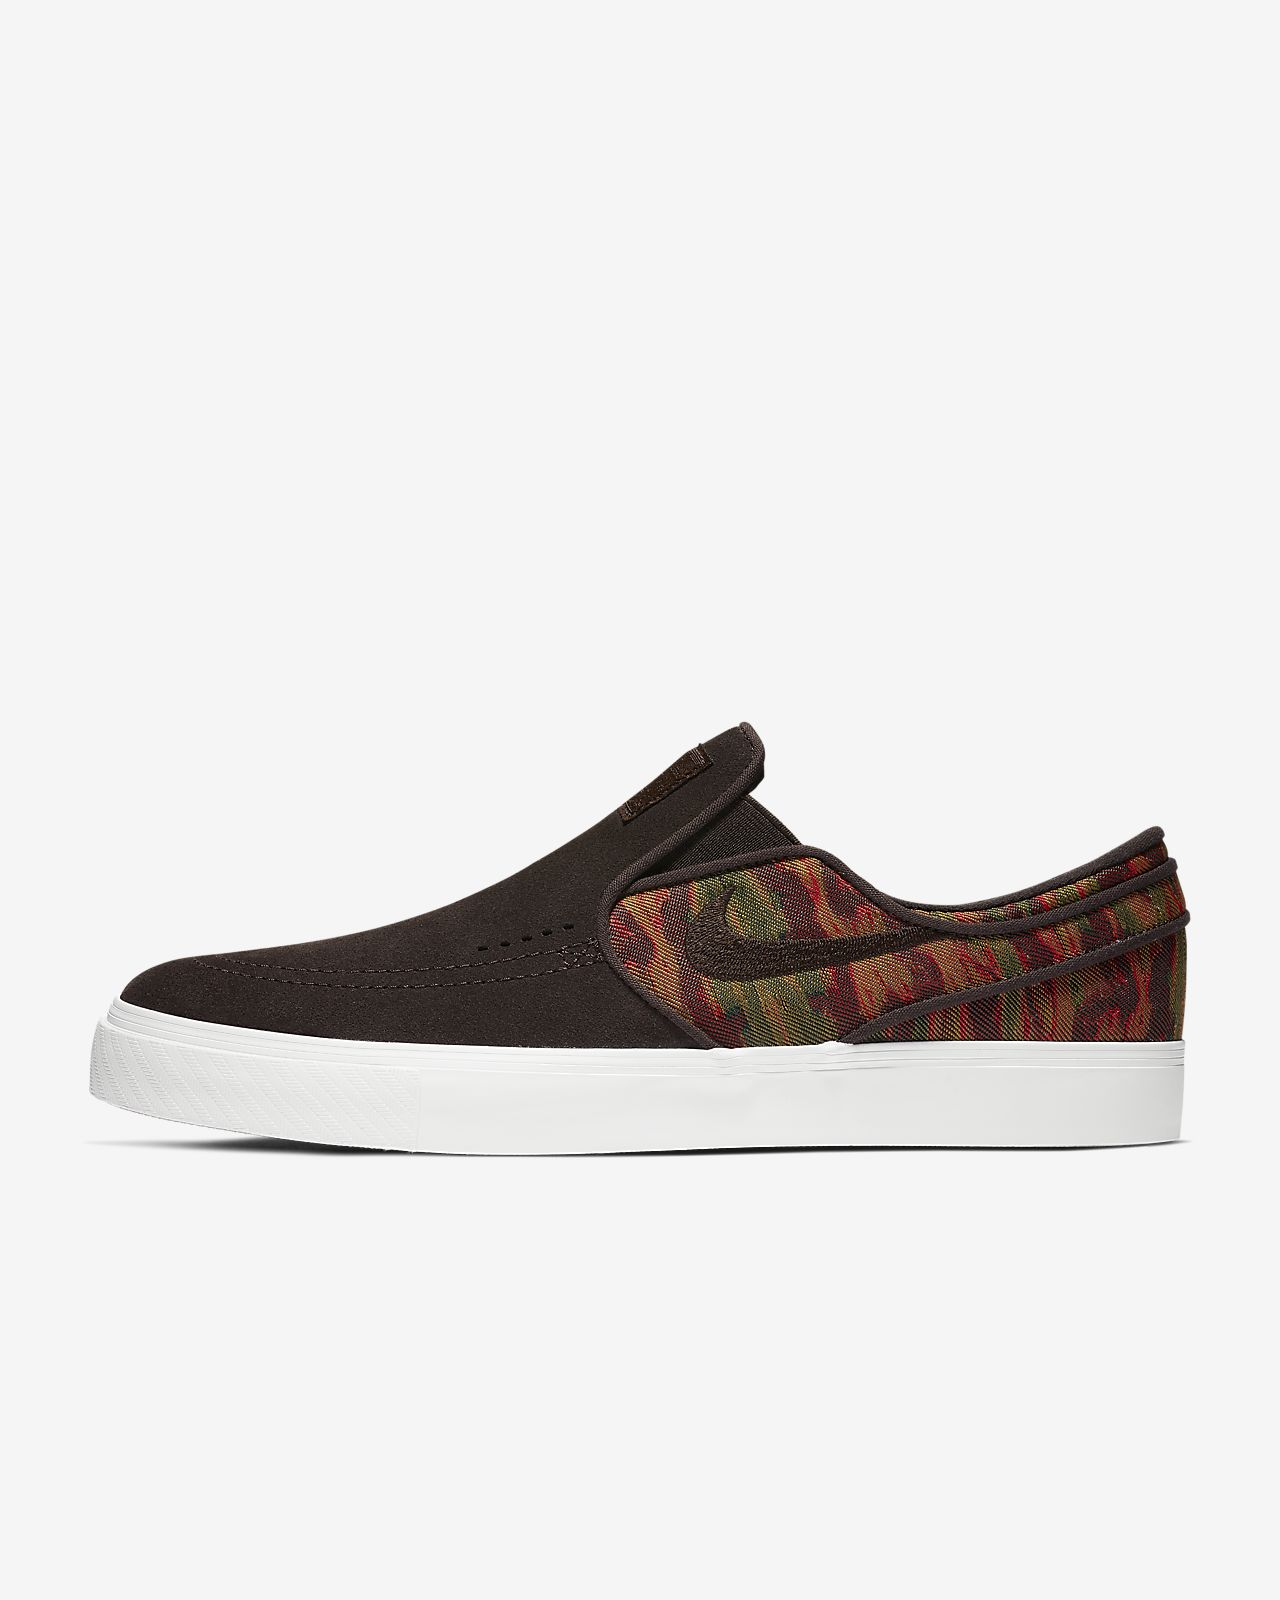 Nike SB Zoom Stefan Janoski Slip-On Premium Men's Skateboarding Shoe